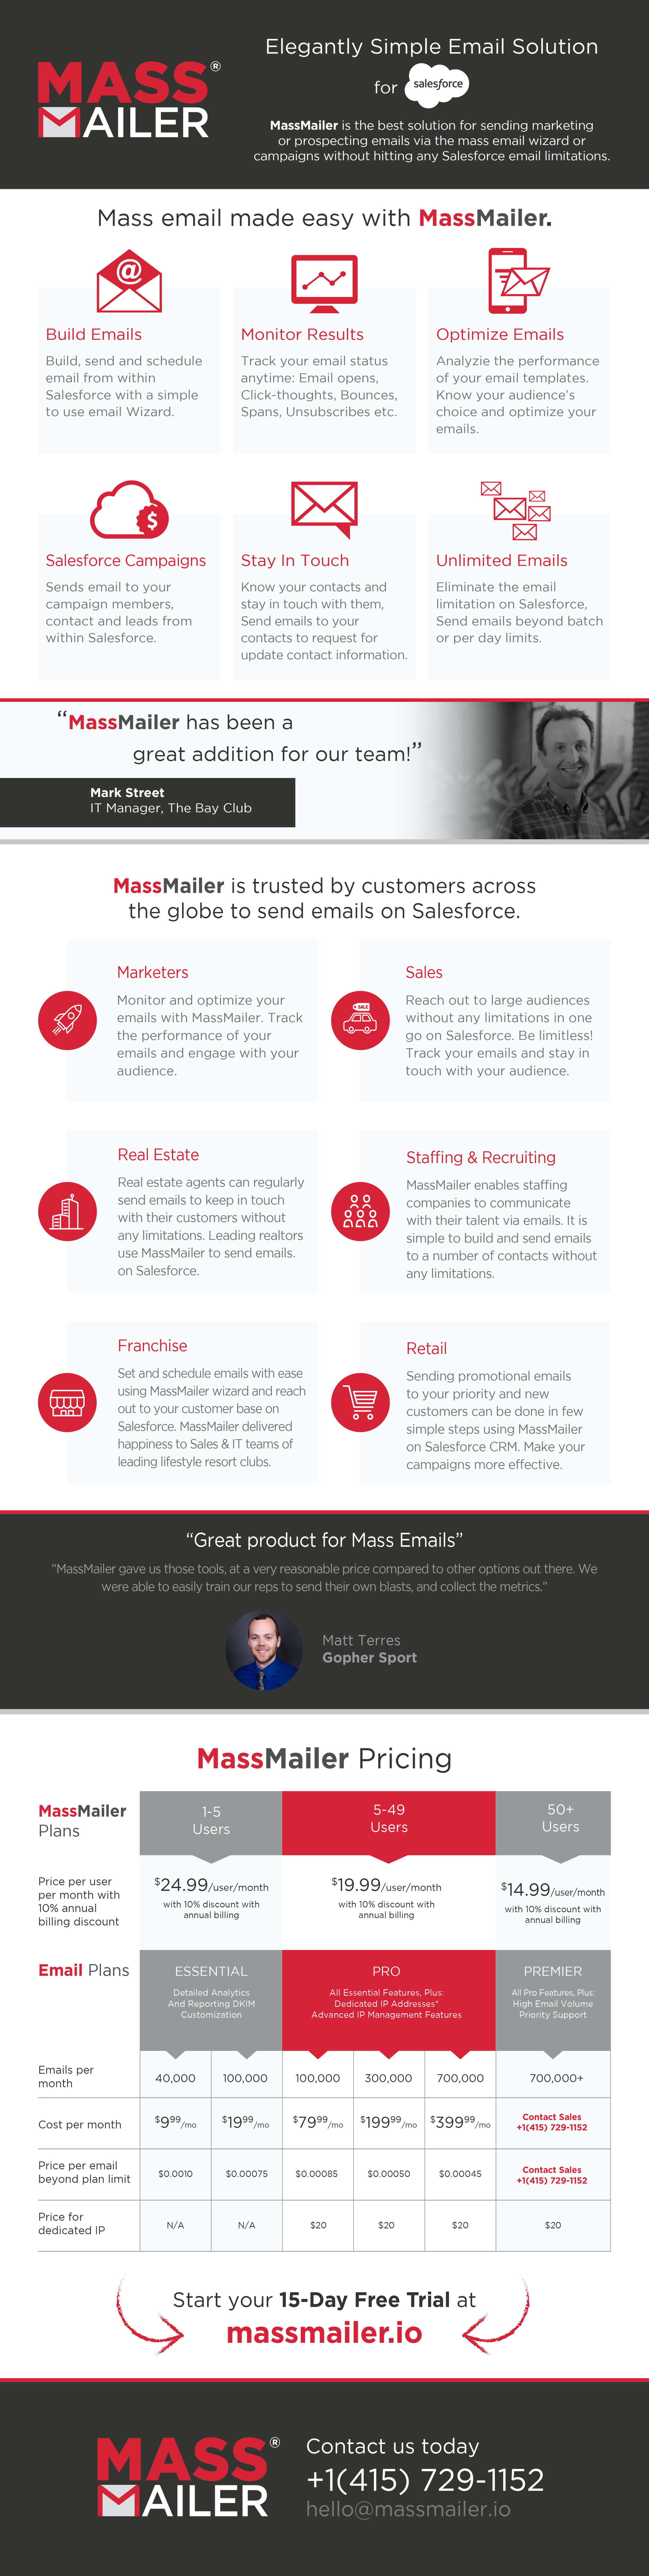 MassMailer - Best Email Solution for Salesforce CRM for sending marketing or prospecting emails without hitting any Salesforce email limitations.